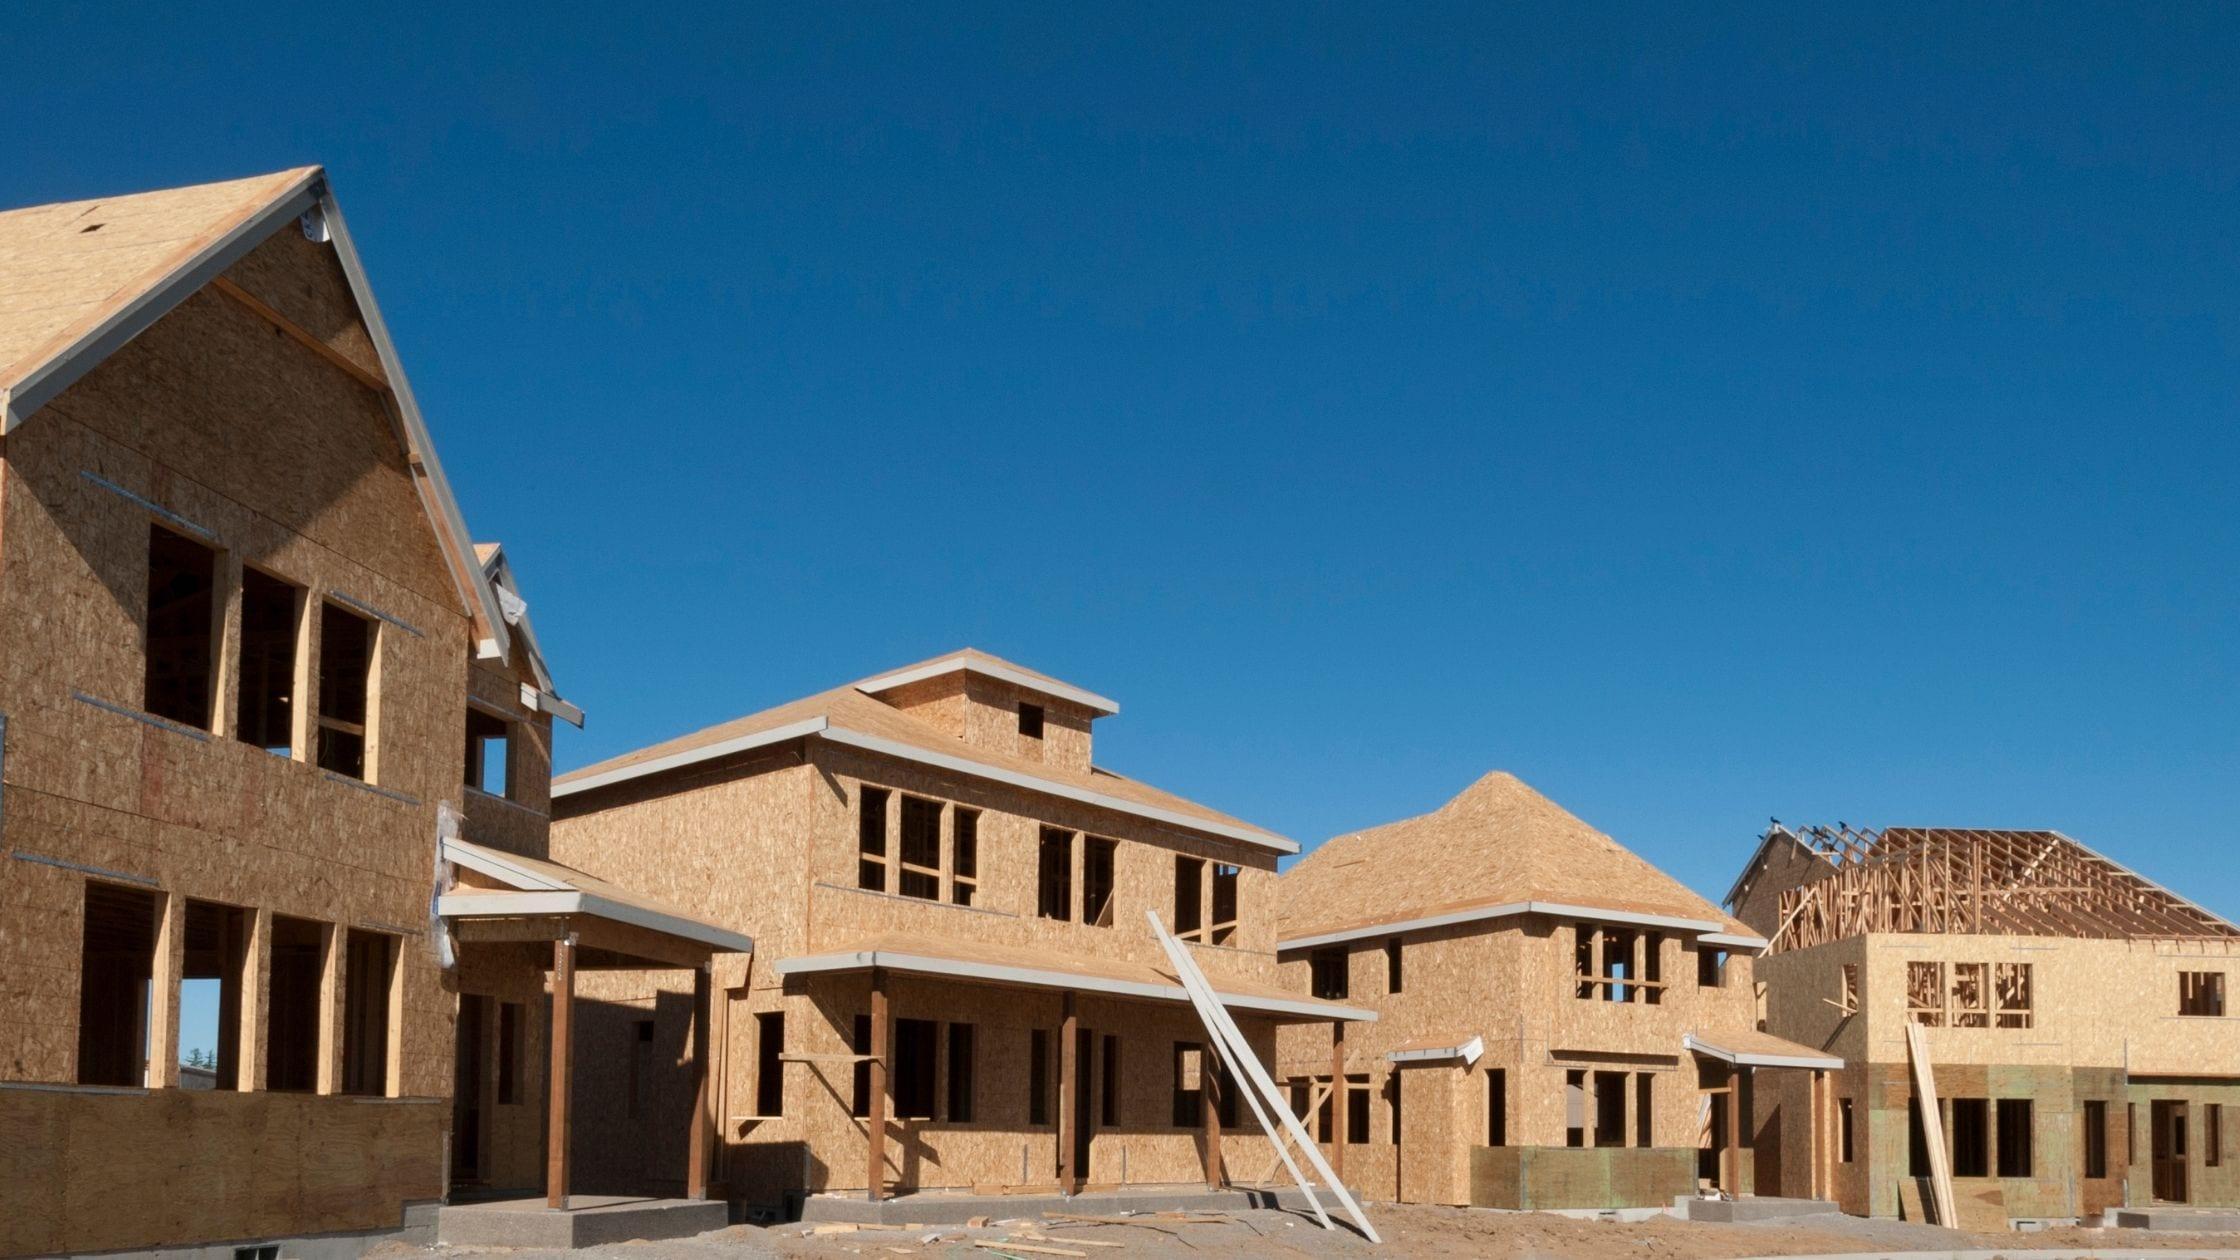 3 Things To Look Out For When Buying A New Construction Home